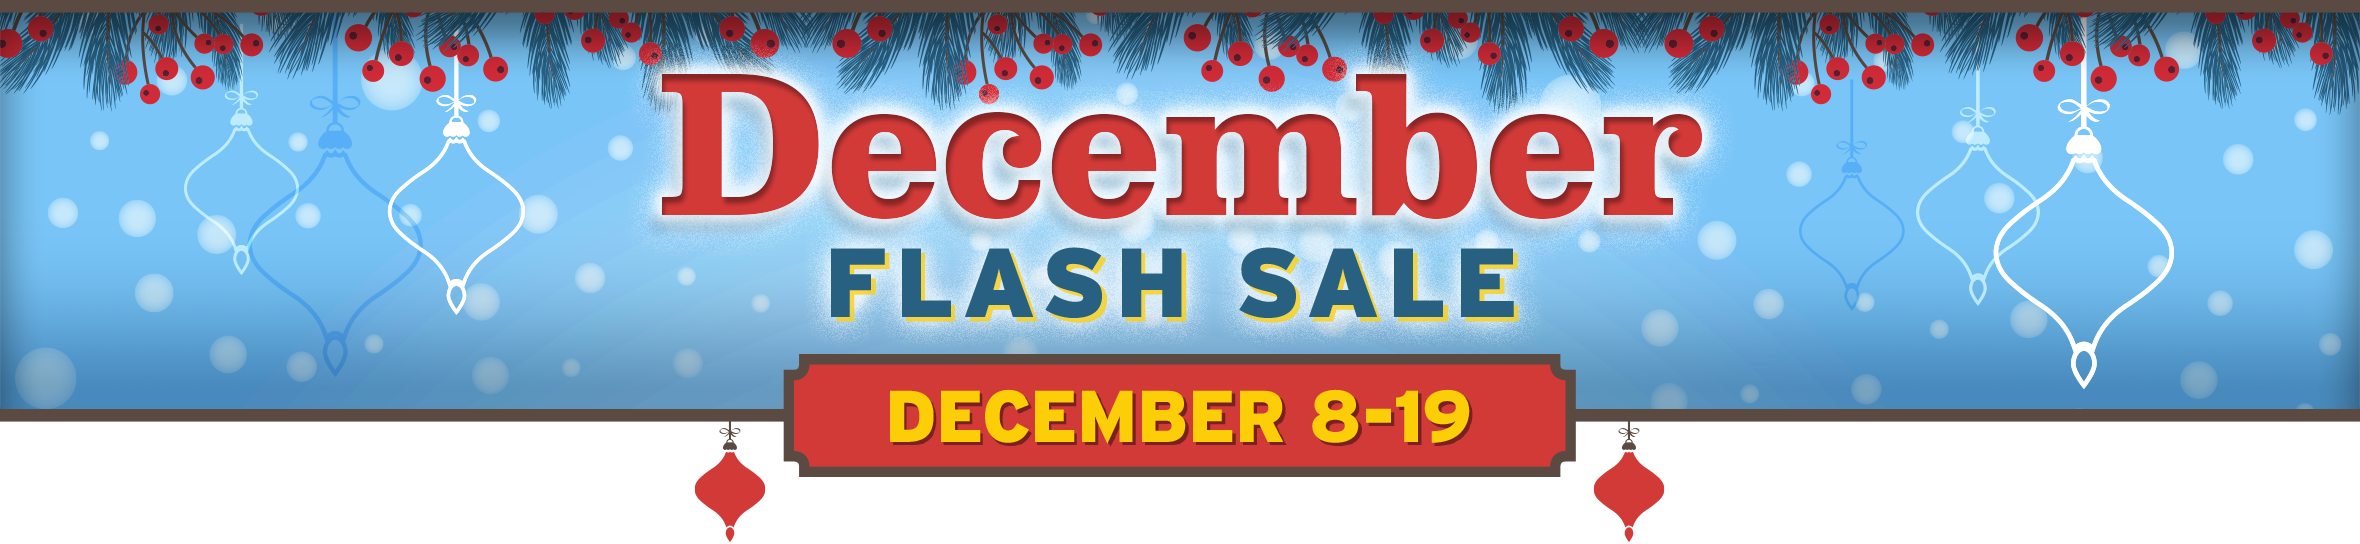 Rodda Paint December Flash Sale